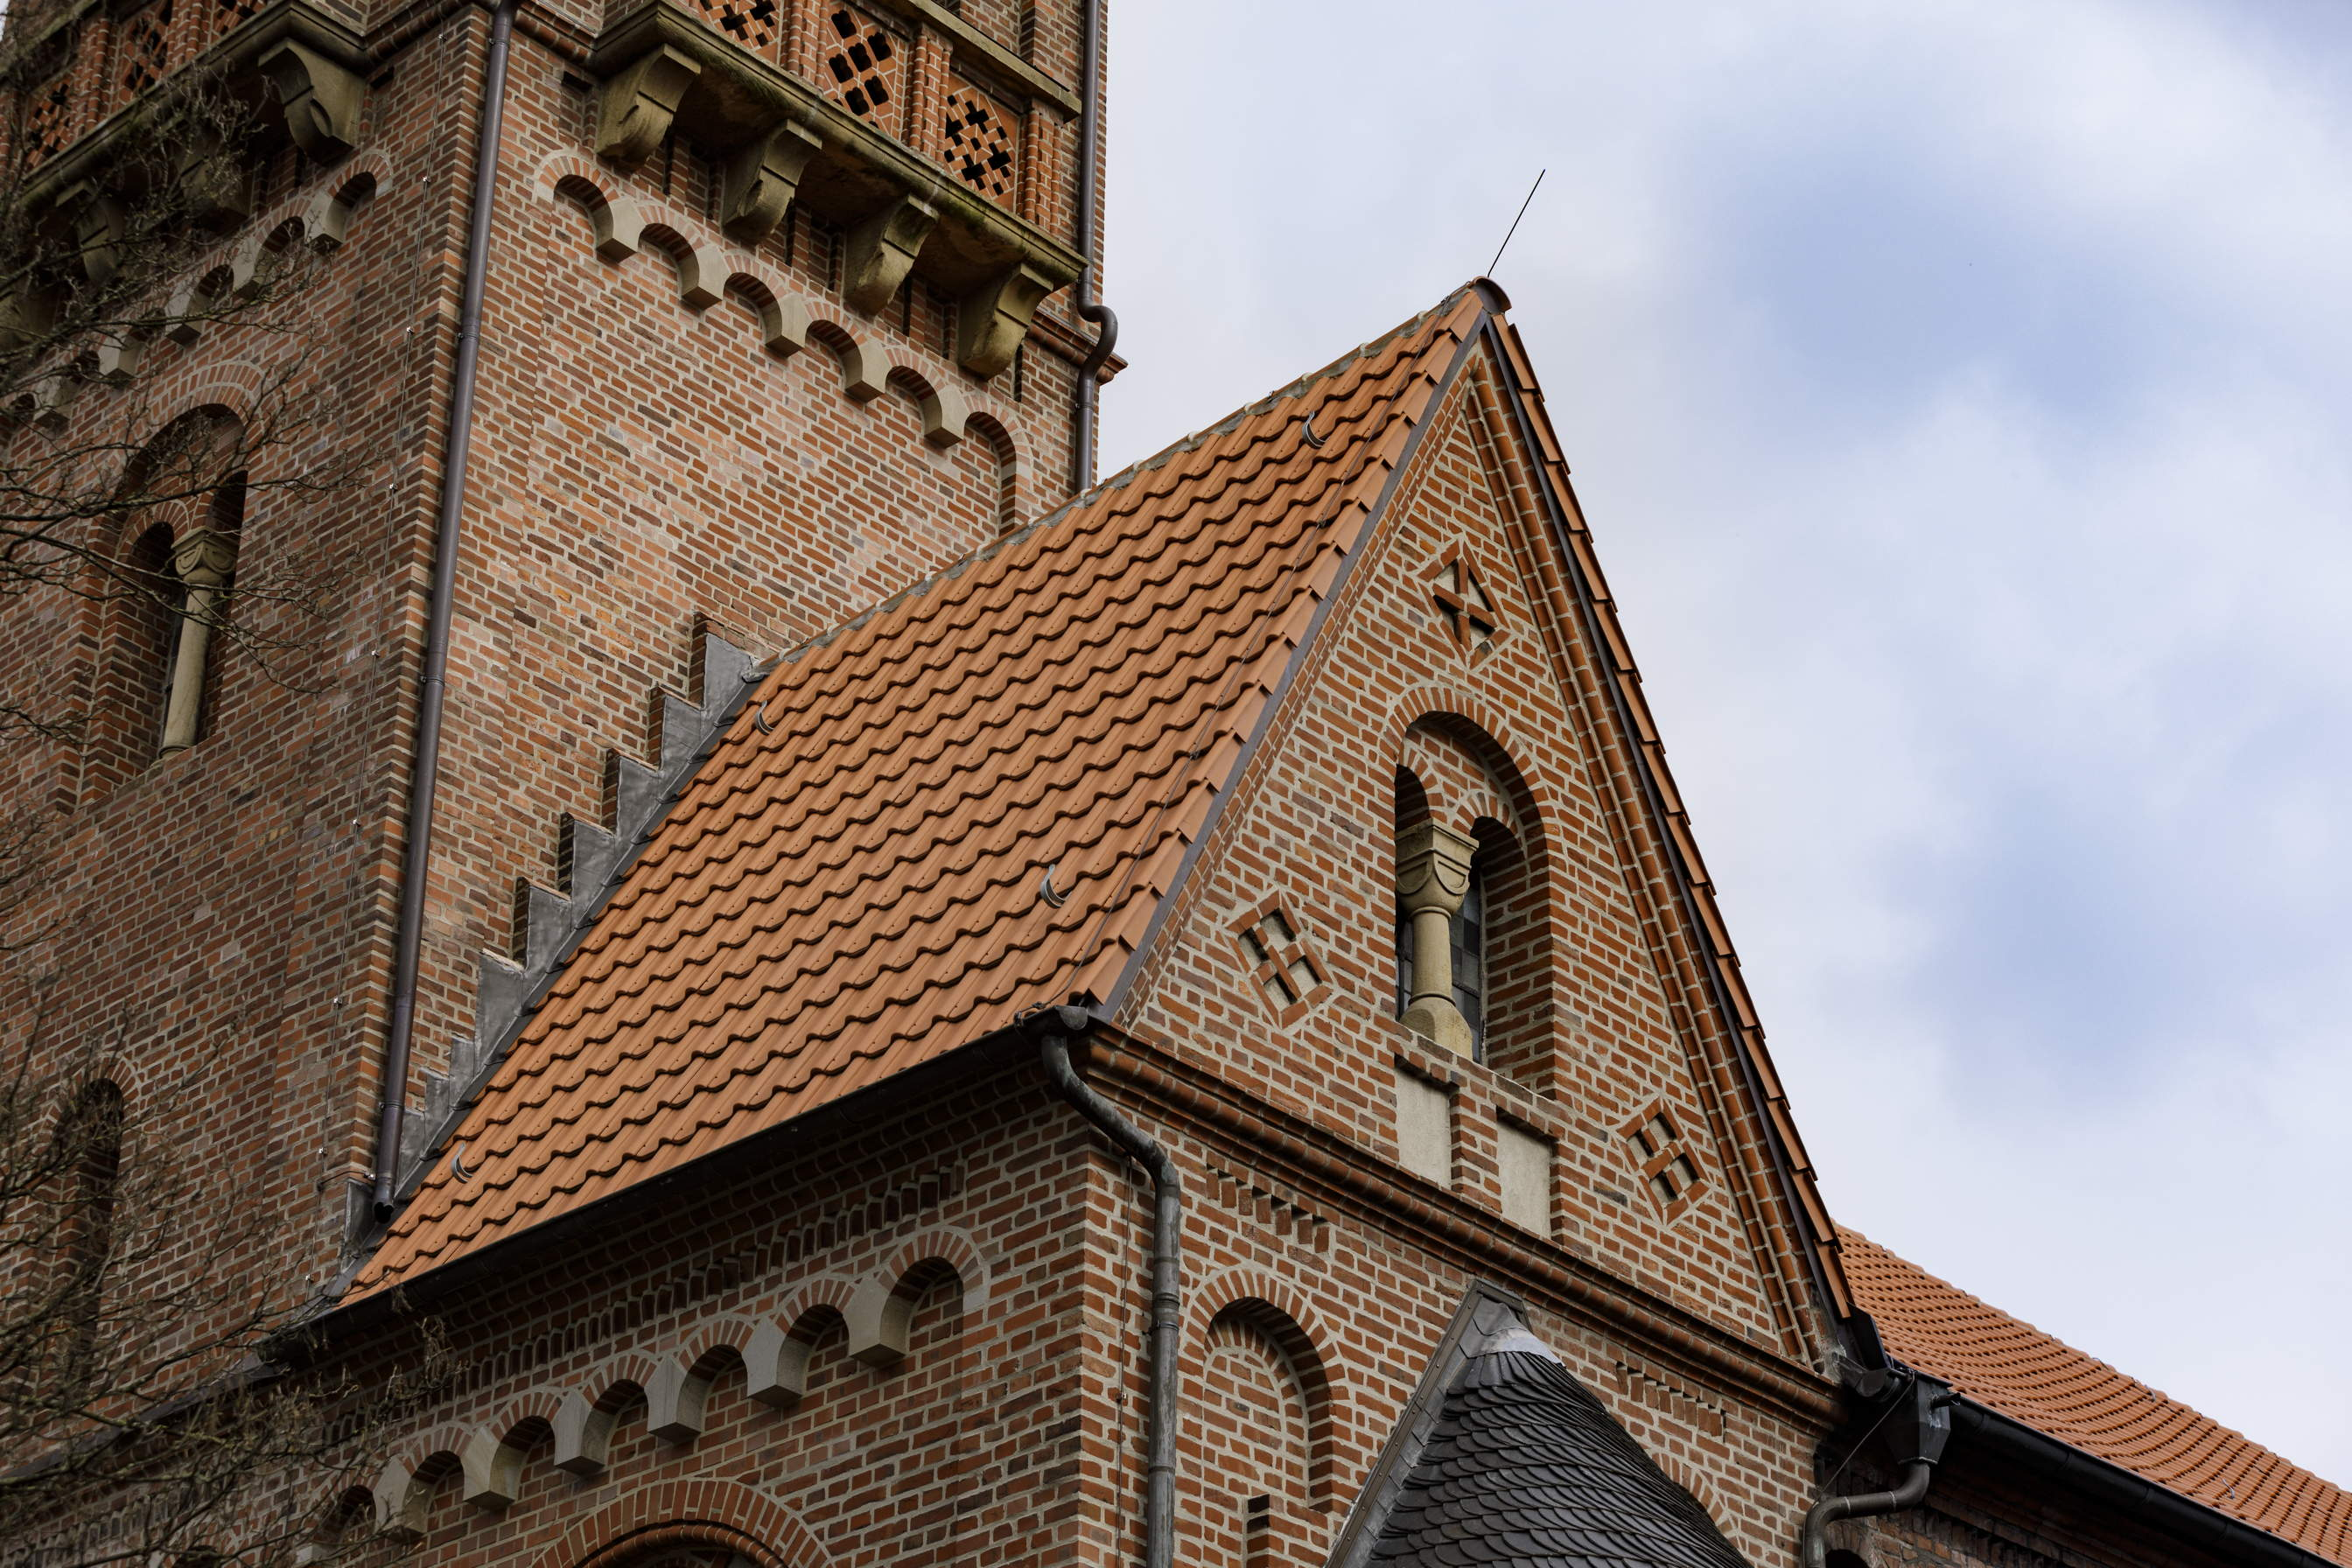 lutherkirche-image-4